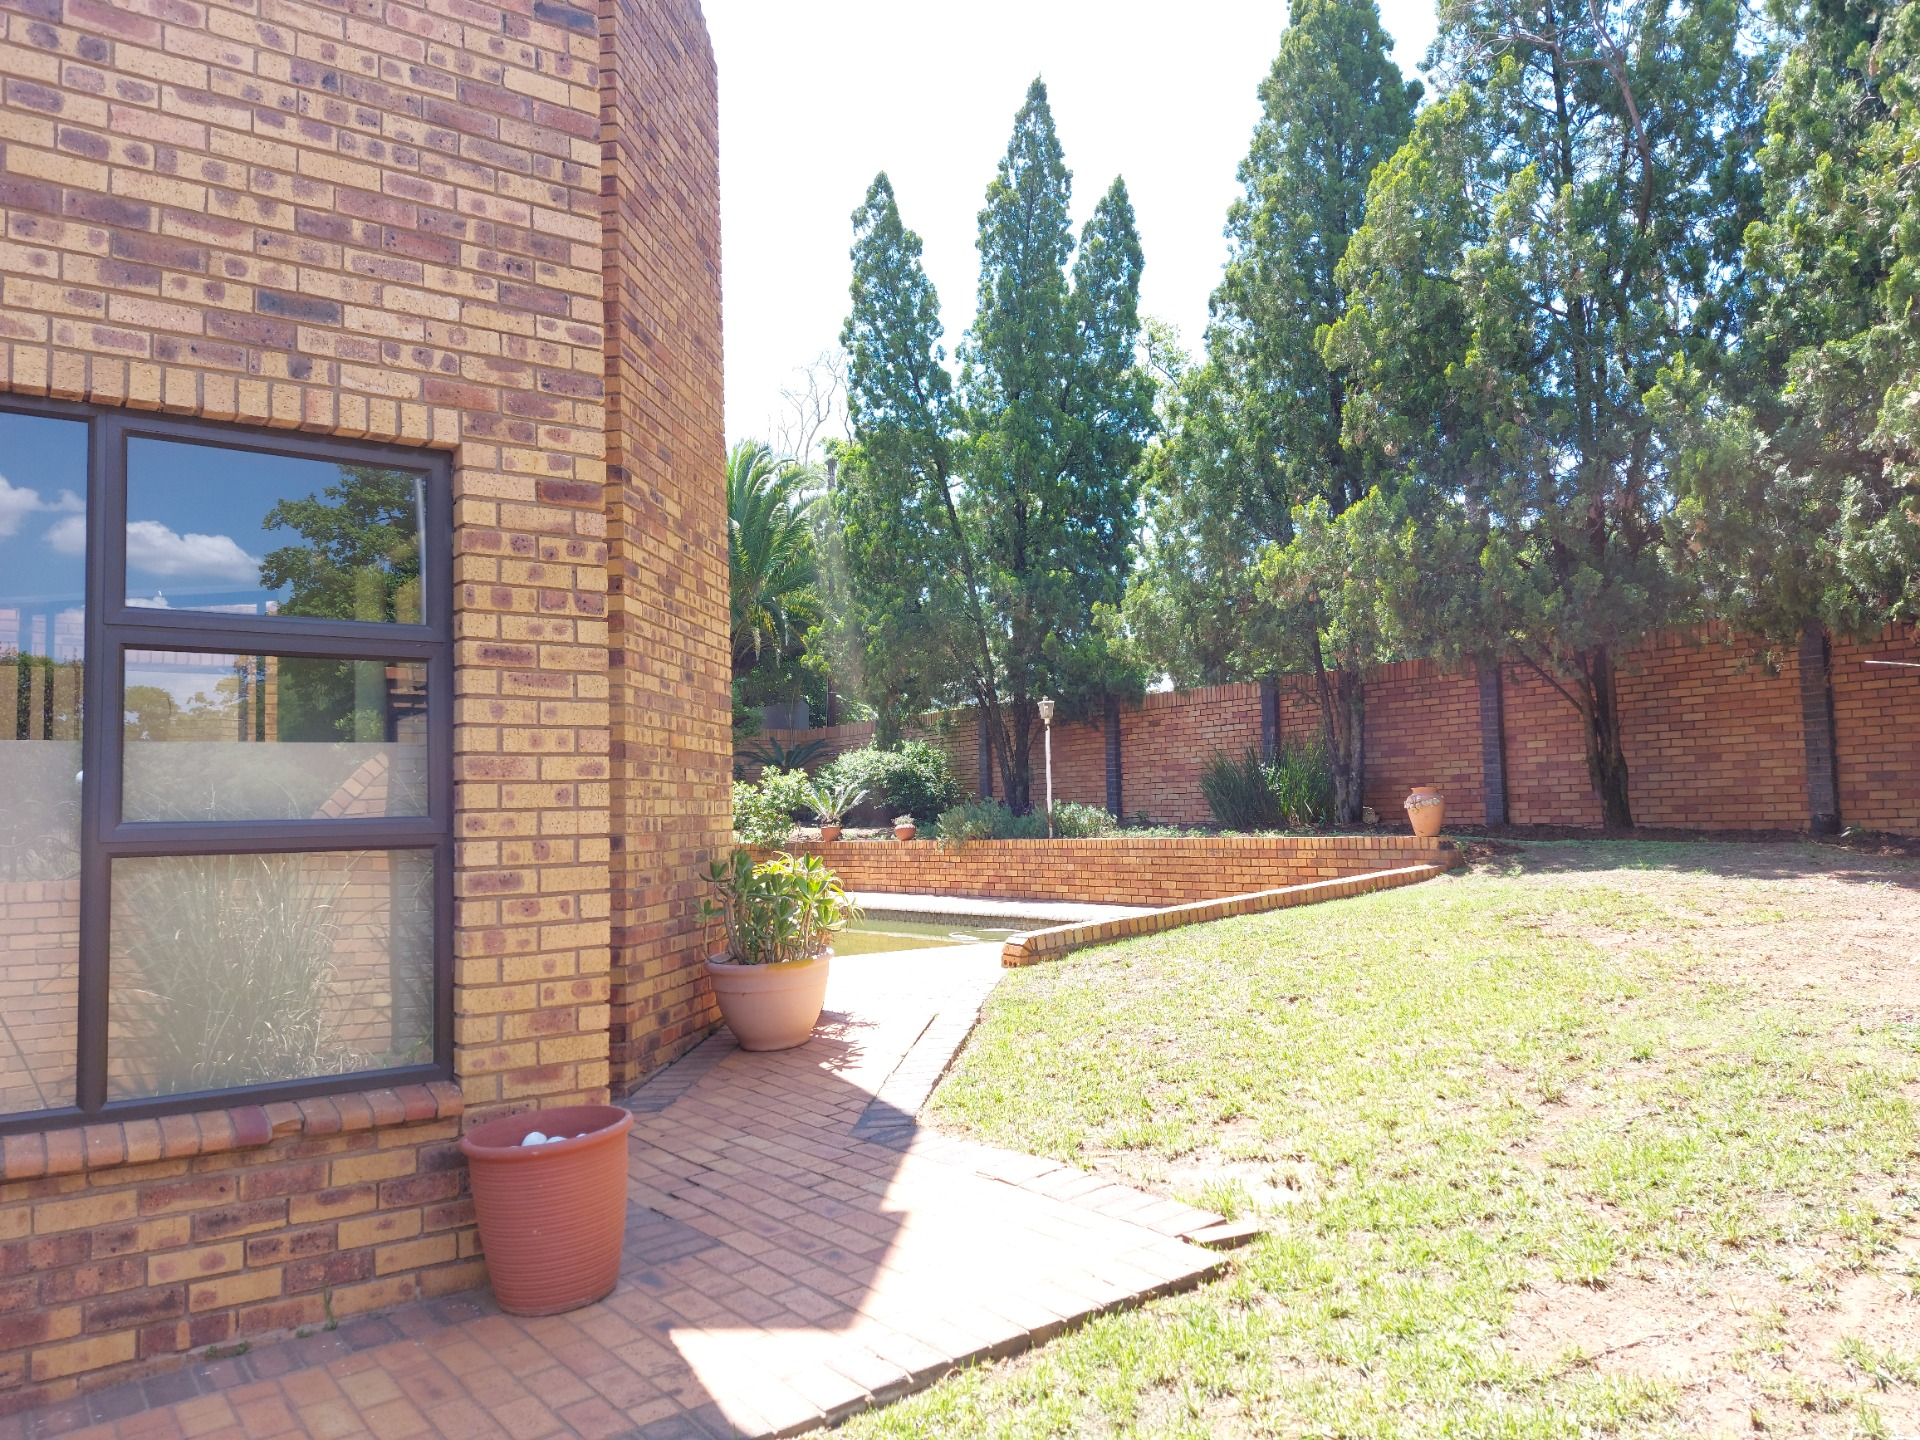 5 Bedrooms family home for sale in Kyalami